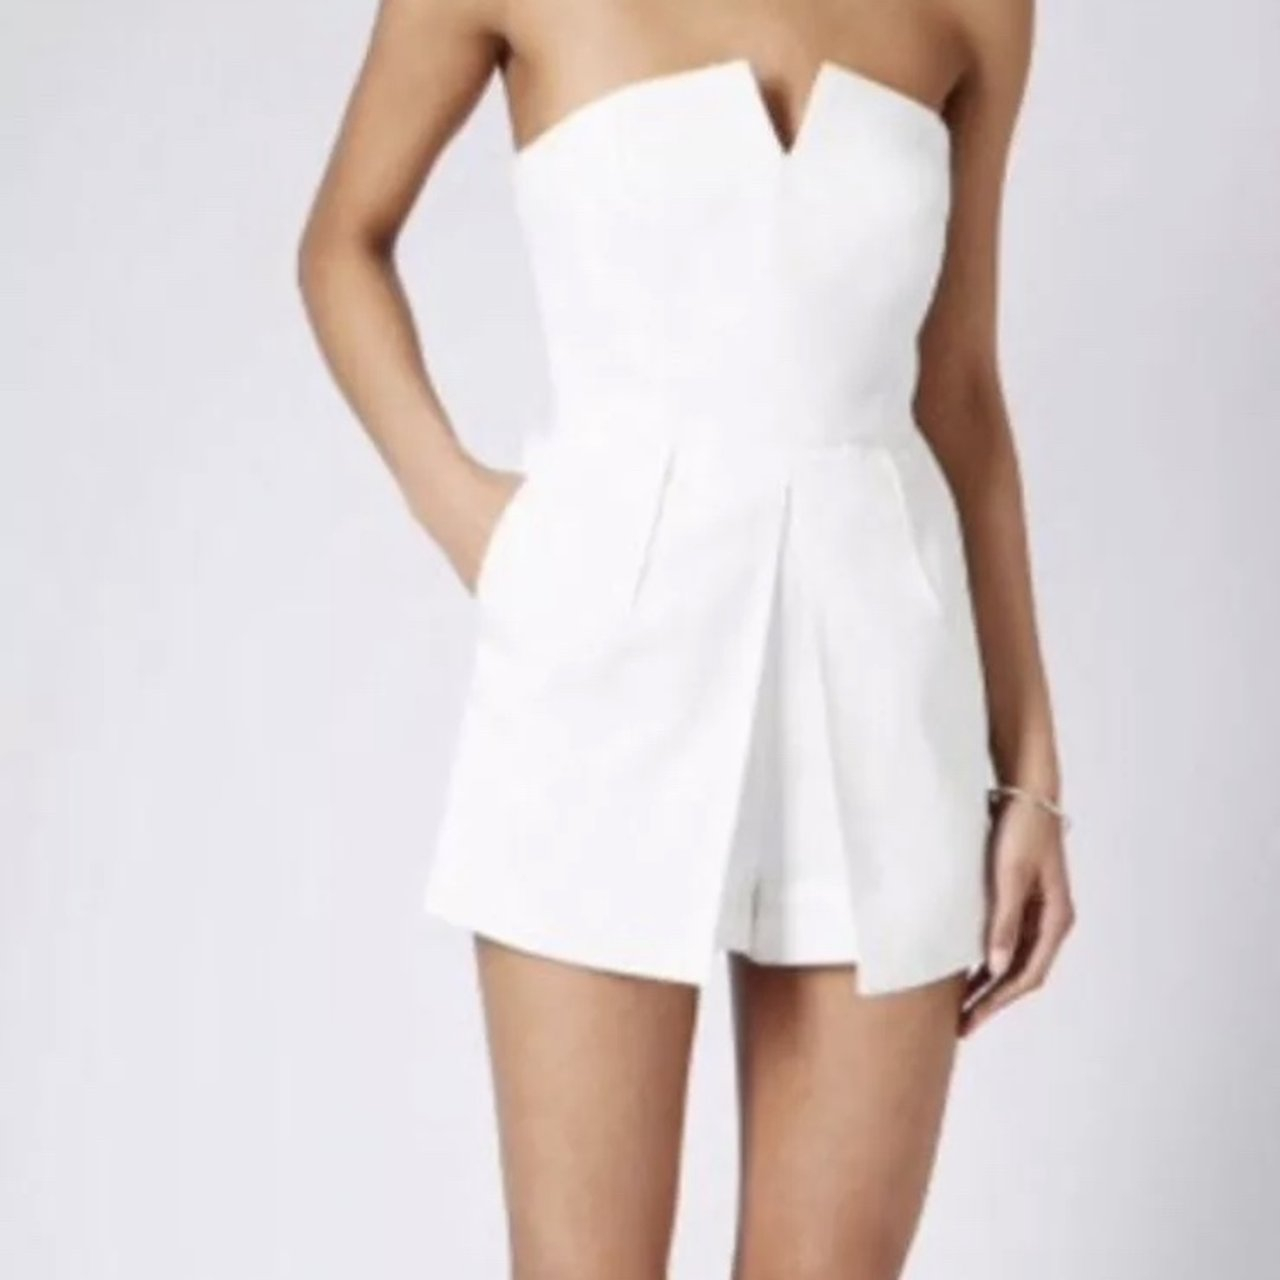 b53b7357ba White Strapless Playsuit Topshop Size 10 - small so fits an - Depop